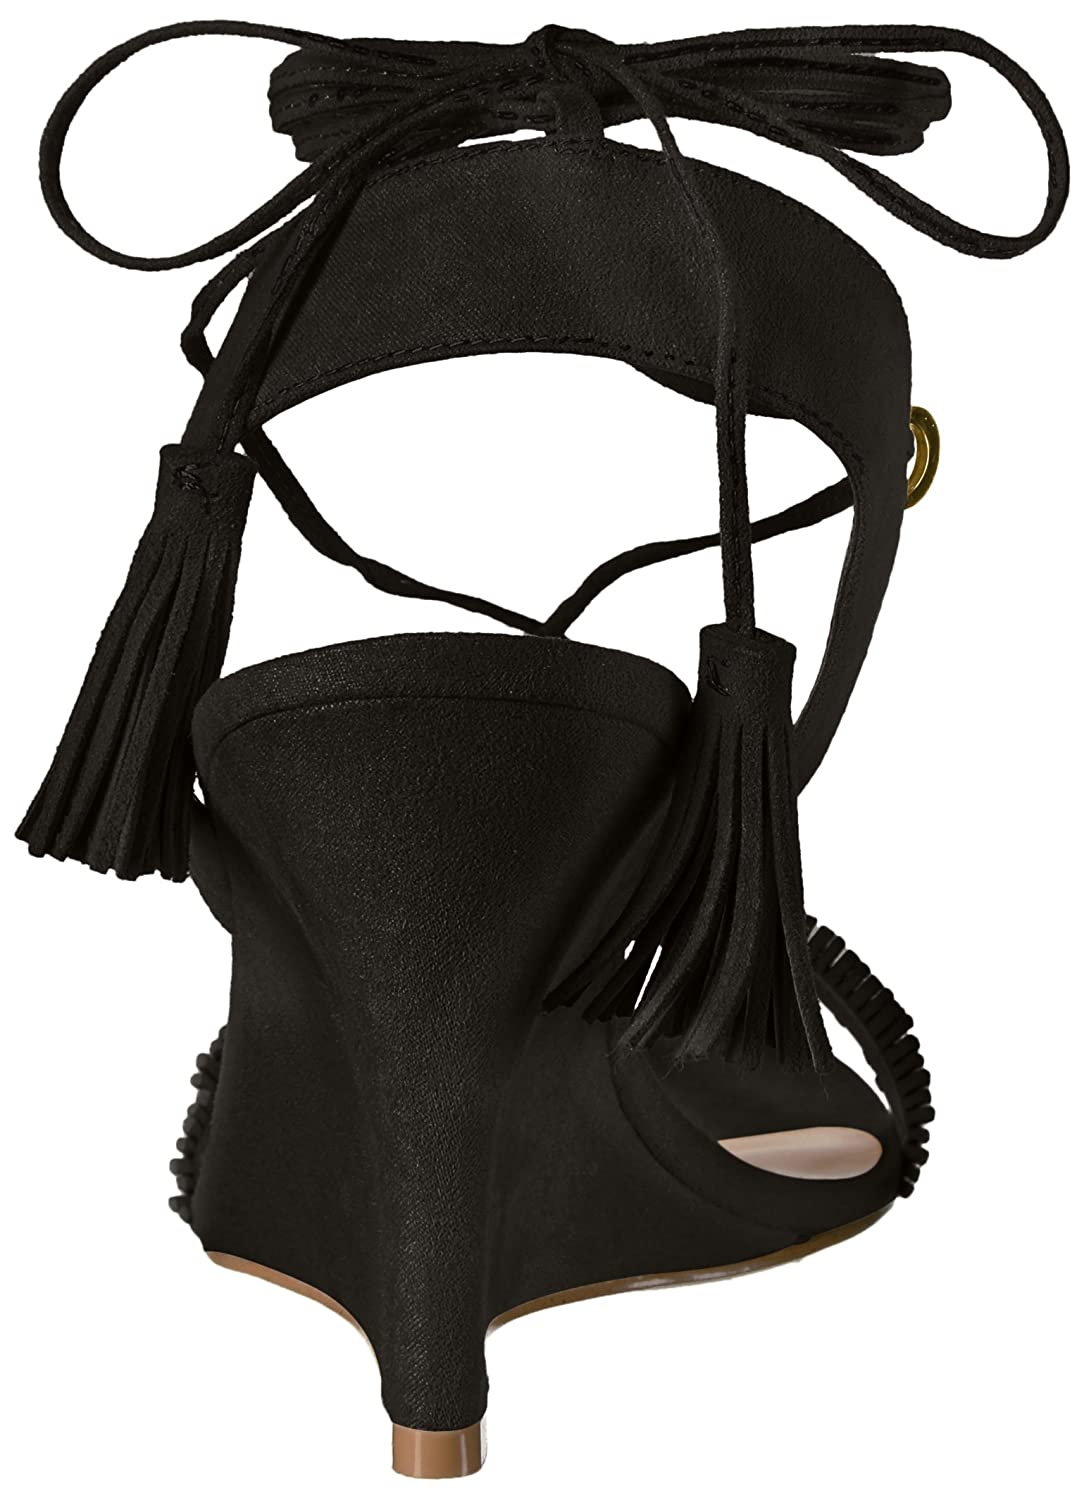 Daya by Zendaya Women's Mesa Wedge Sandal B01K1J9A8W 9.5 B(M) US|Black